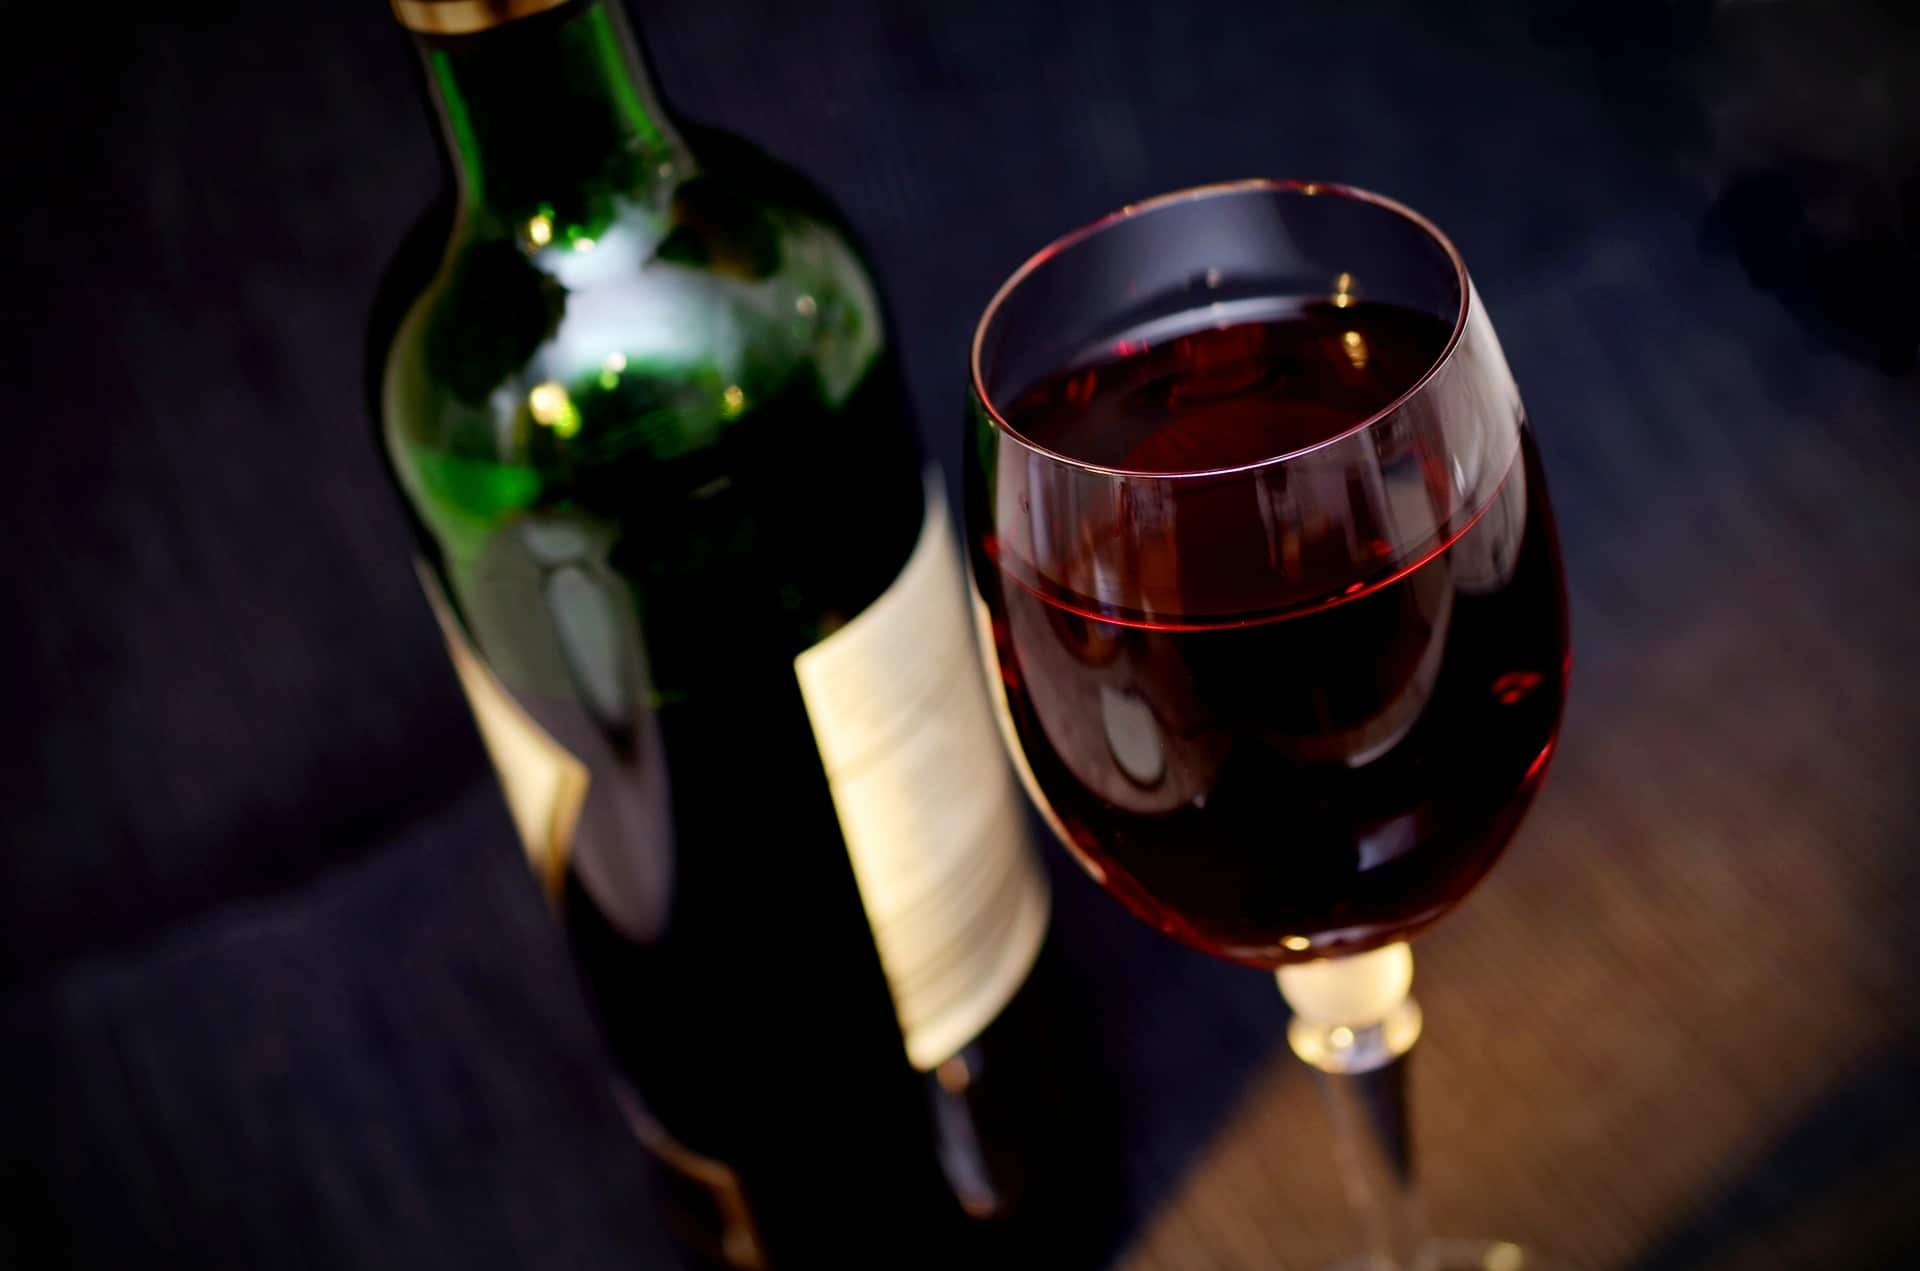 Oxidization of Wine The Home Vintner